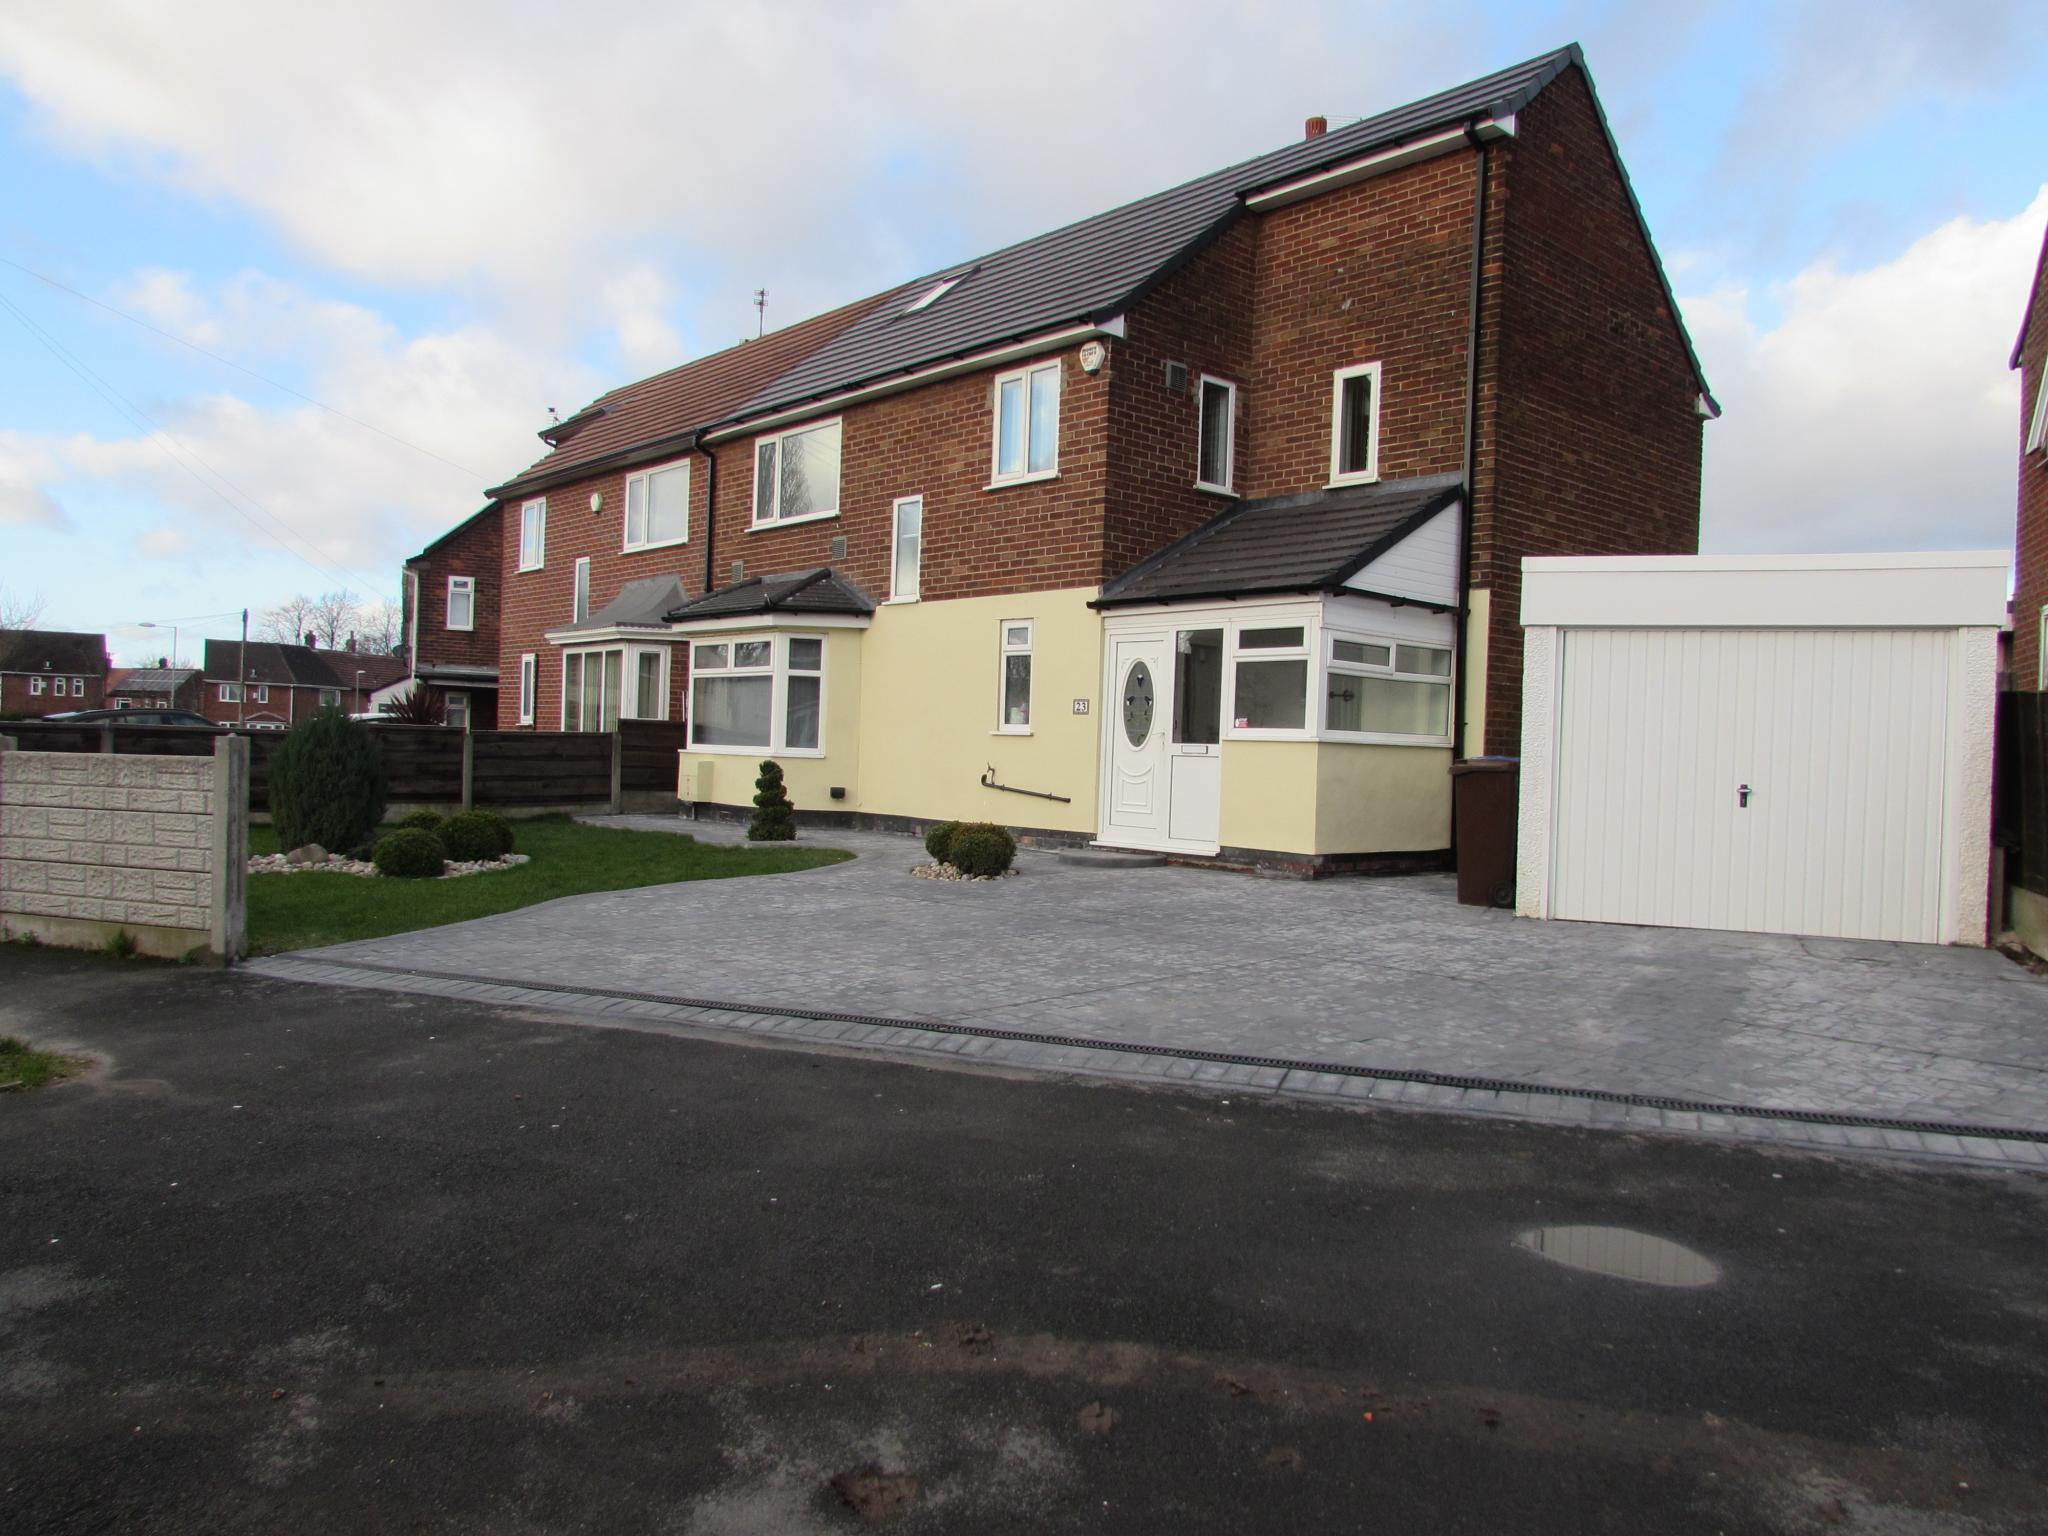 1 Bedroom Semi-detached House To Rent - Front